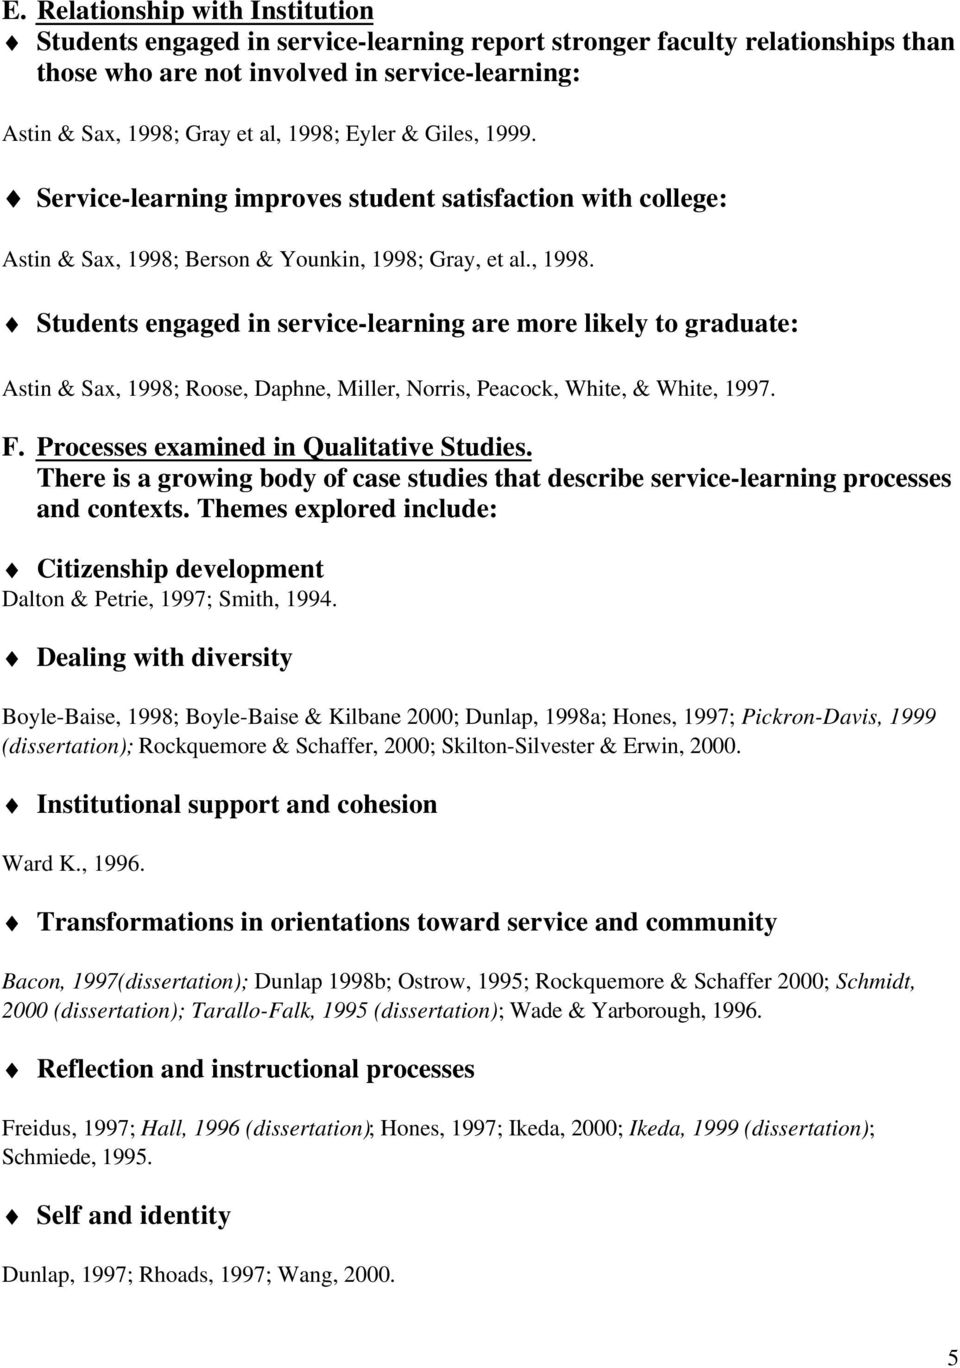 Berson & Younkin, 1998; Gray, et al., 1998. Students engaged in service-learning are more likely to graduate: Astin & Sax, 1998; Roose, Daphne, Miller, Norris, Peacock, White, & White, 1997. F.